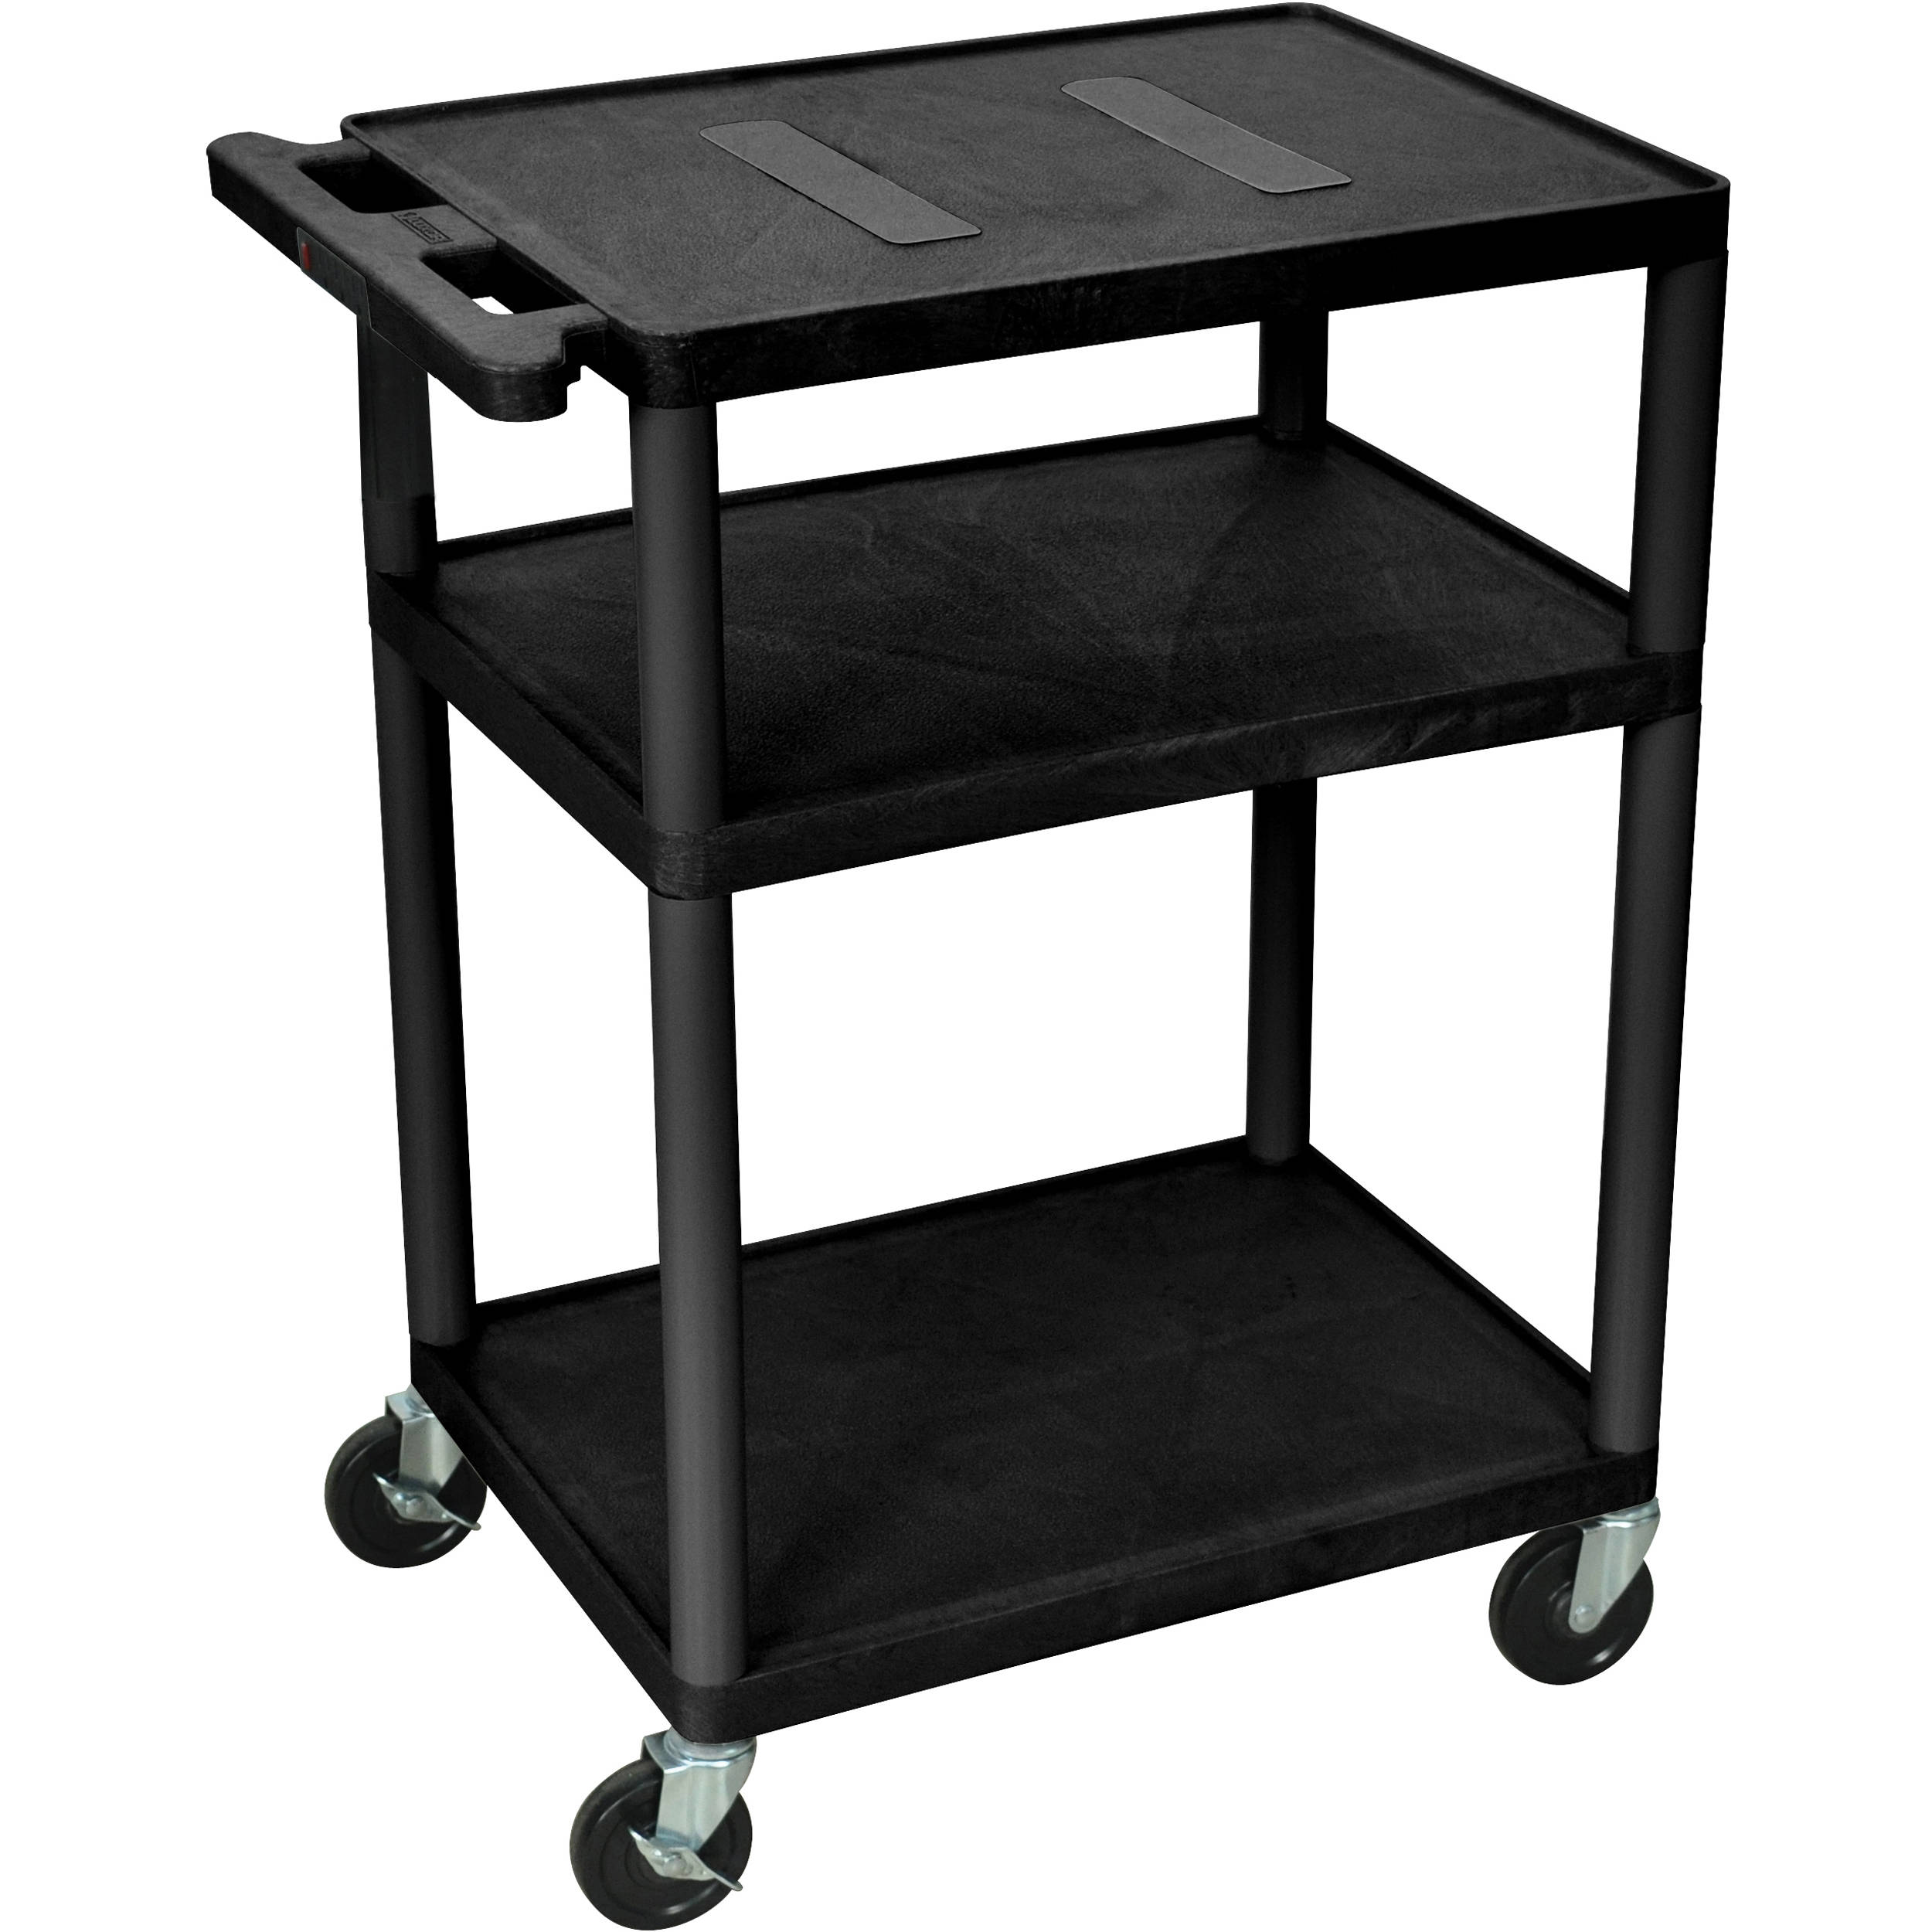 Endura 3 Shelf Multimedia Cart Le34 B H